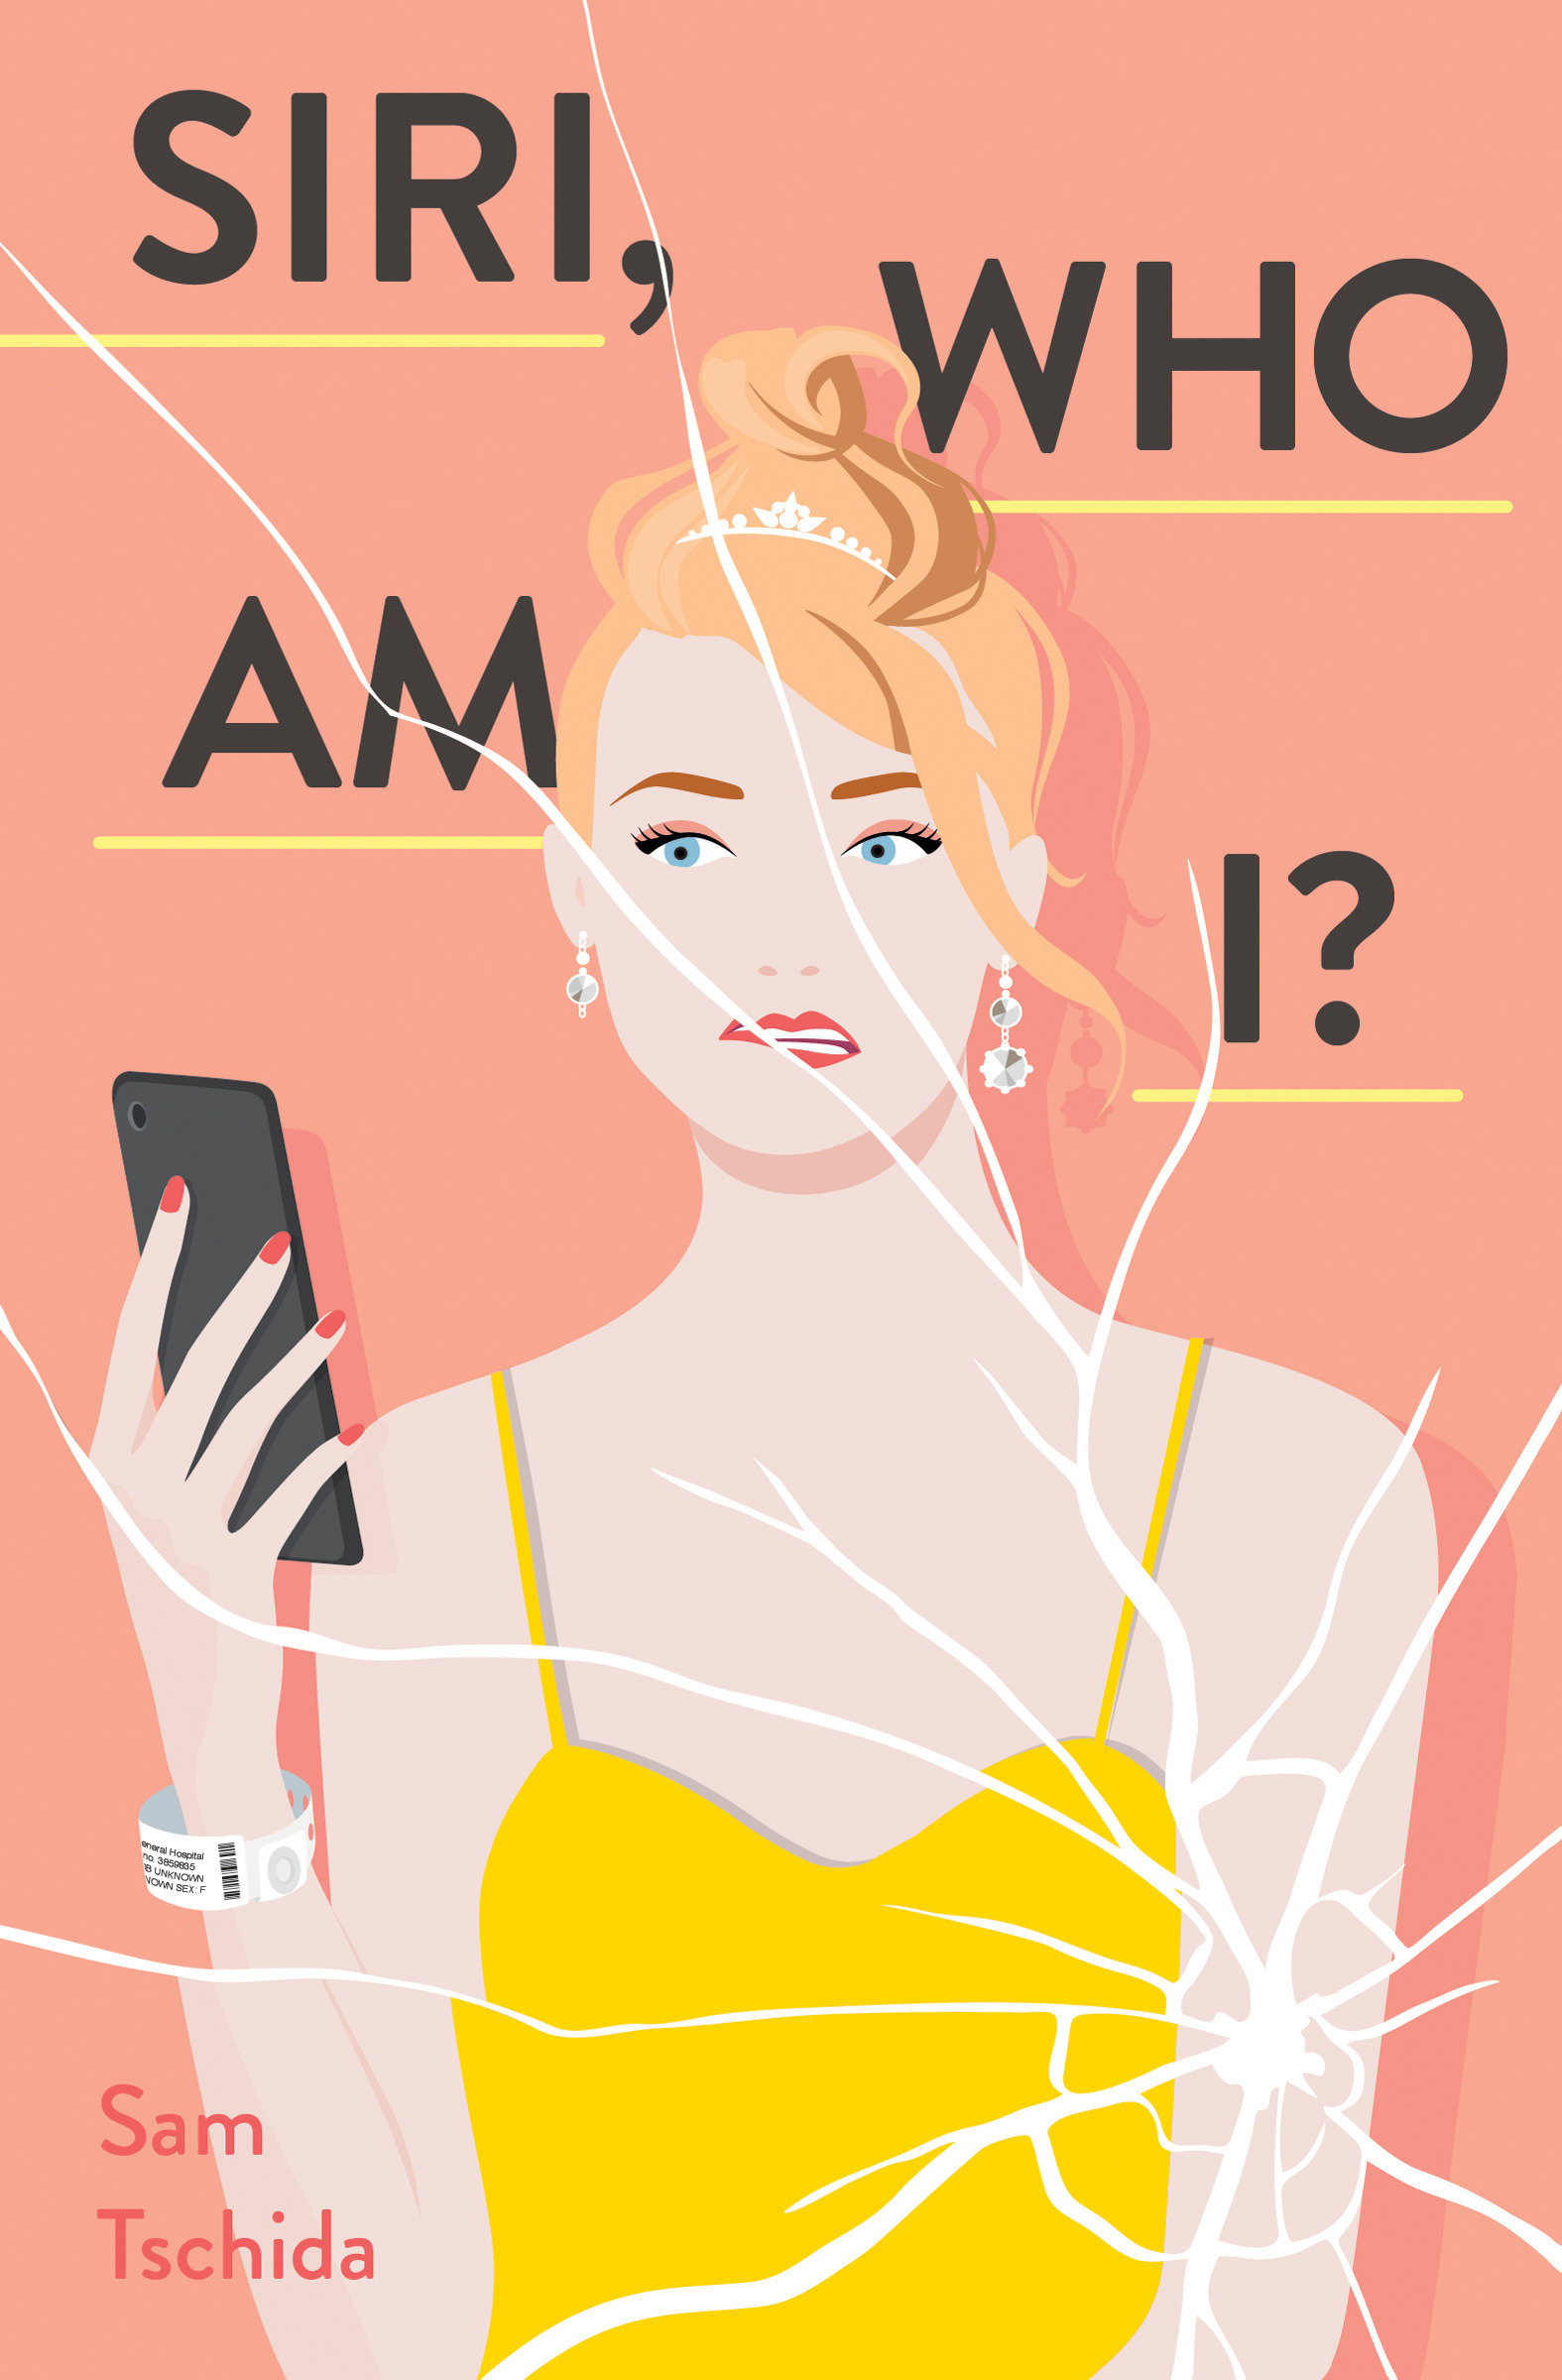 Cover Image of Siri, Who Am I?